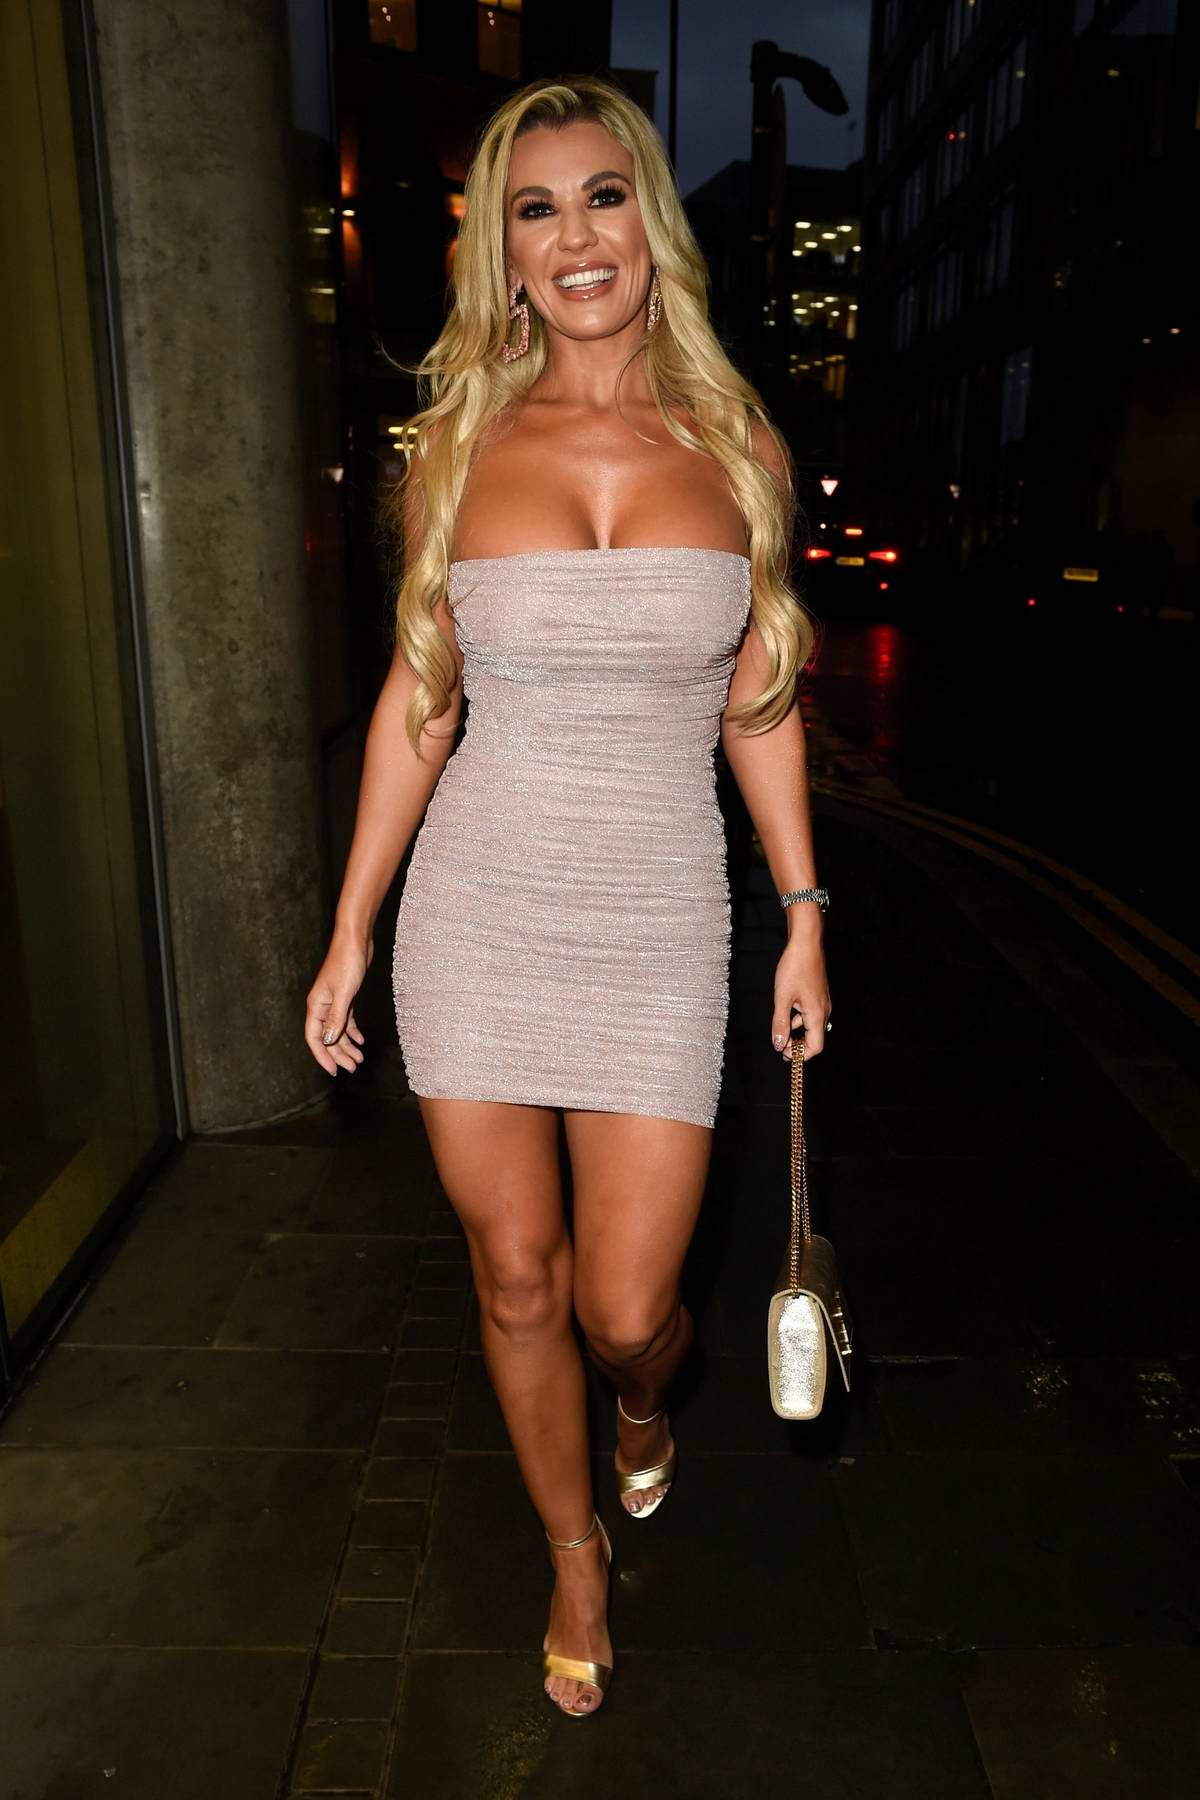 Christine McGuinness joins 'Real Housewives Of Cheshire' filming in Manchester, UK